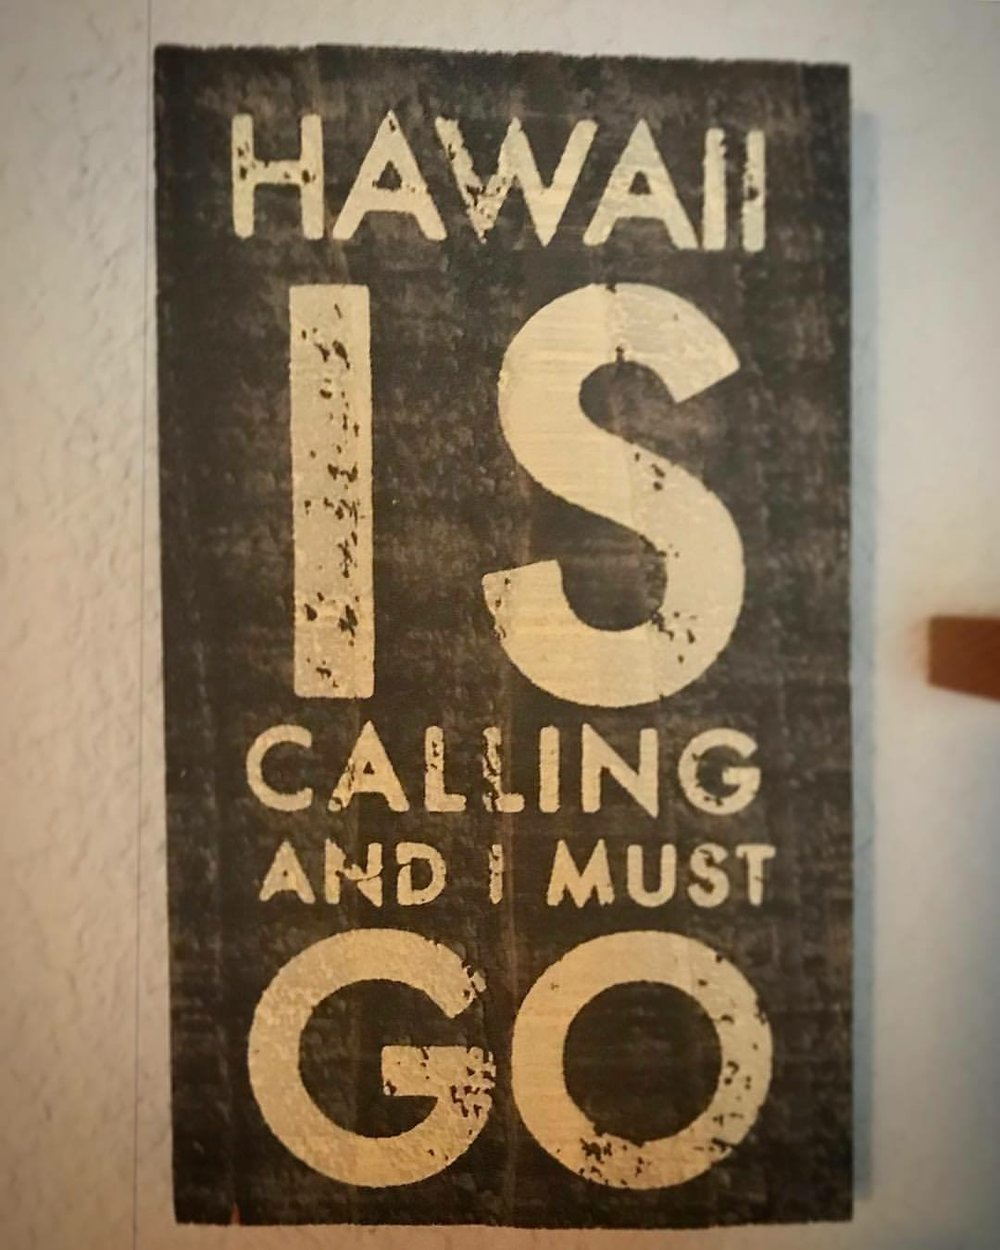 Hawaii is calling and I must go sign